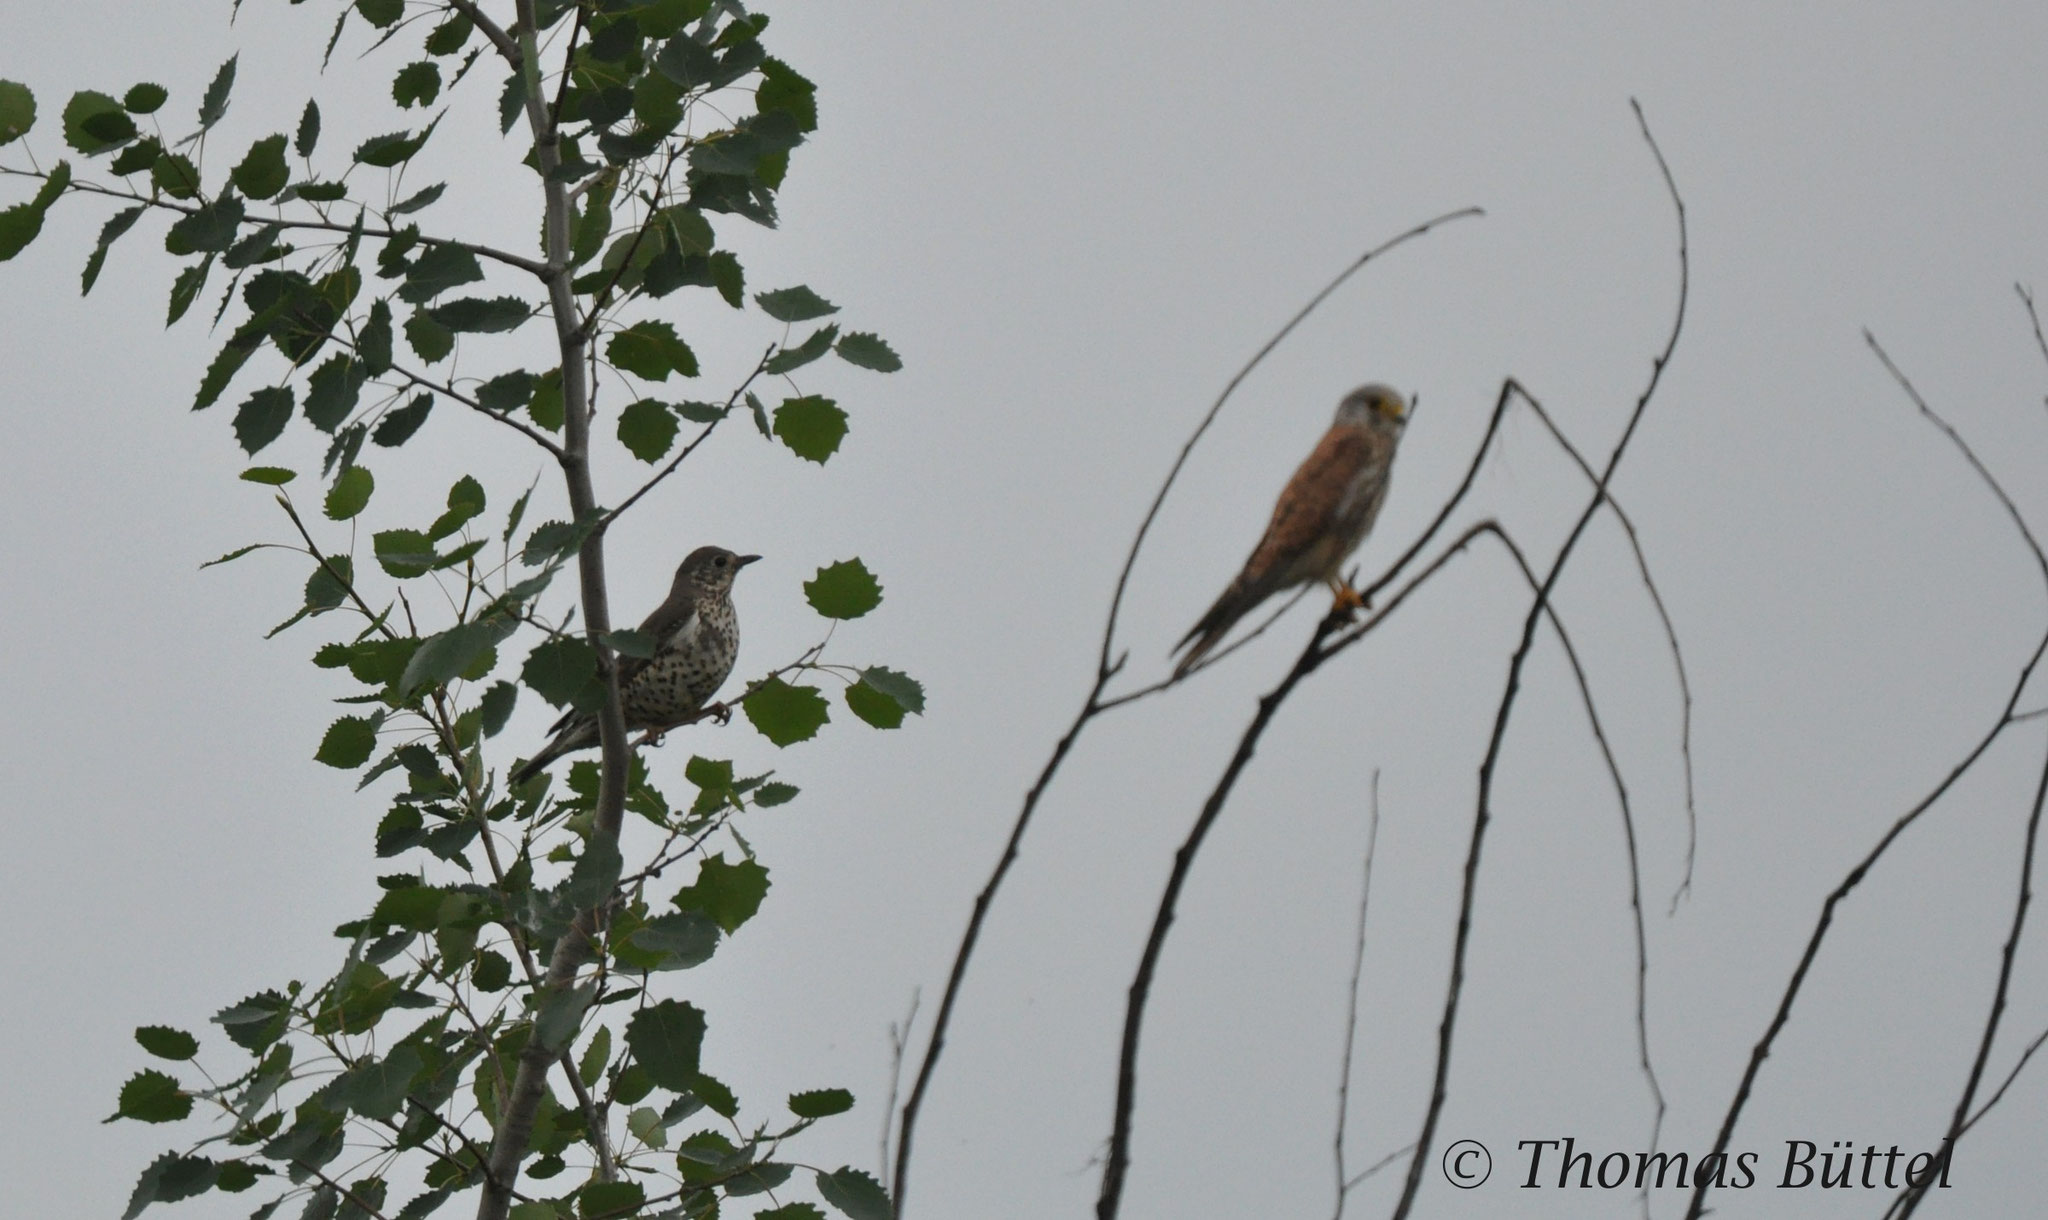 Mistle Thrush (left) and Kestrel (right)